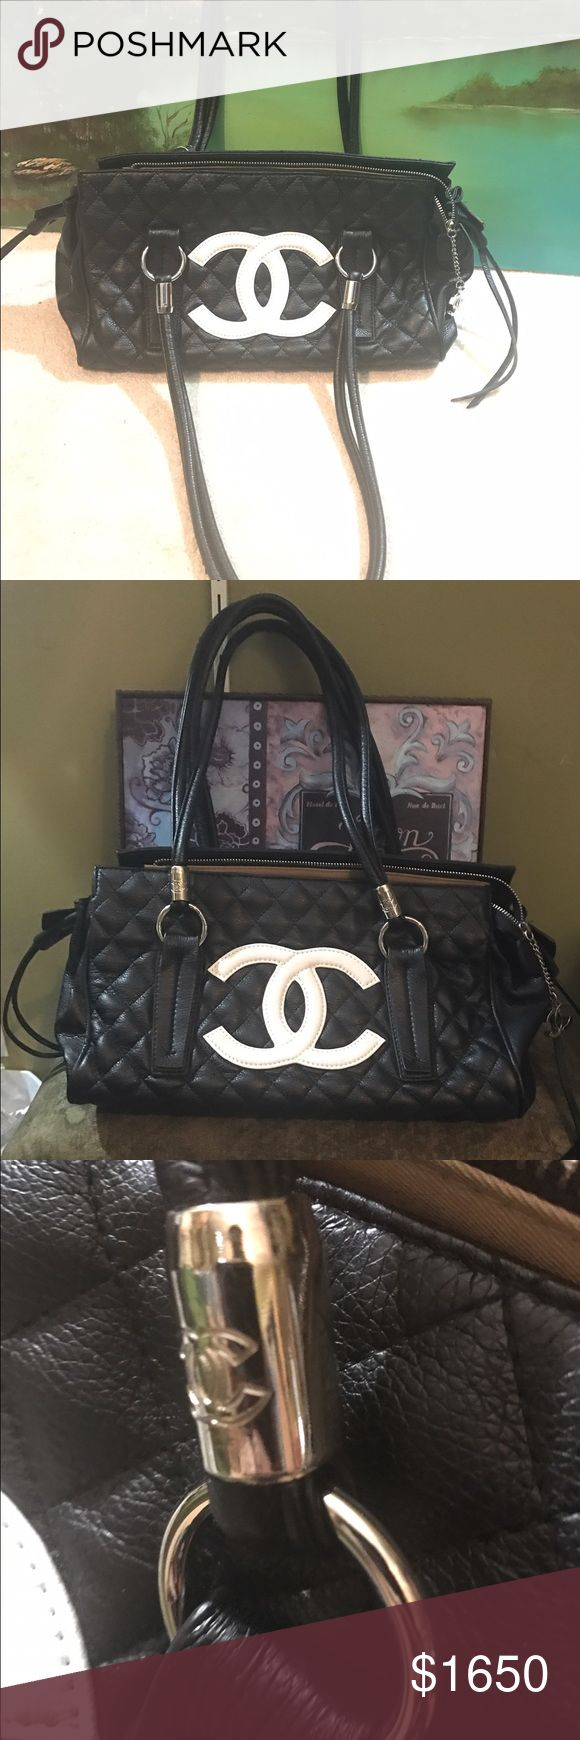 RARE Chanel cambon shldr bag. 100%Authentic MINT!! Black quilted lamb skin shoulder bag. MINT condition with ALL paperwork. 100% authentic. CHANEL Bags Shoulder Bags